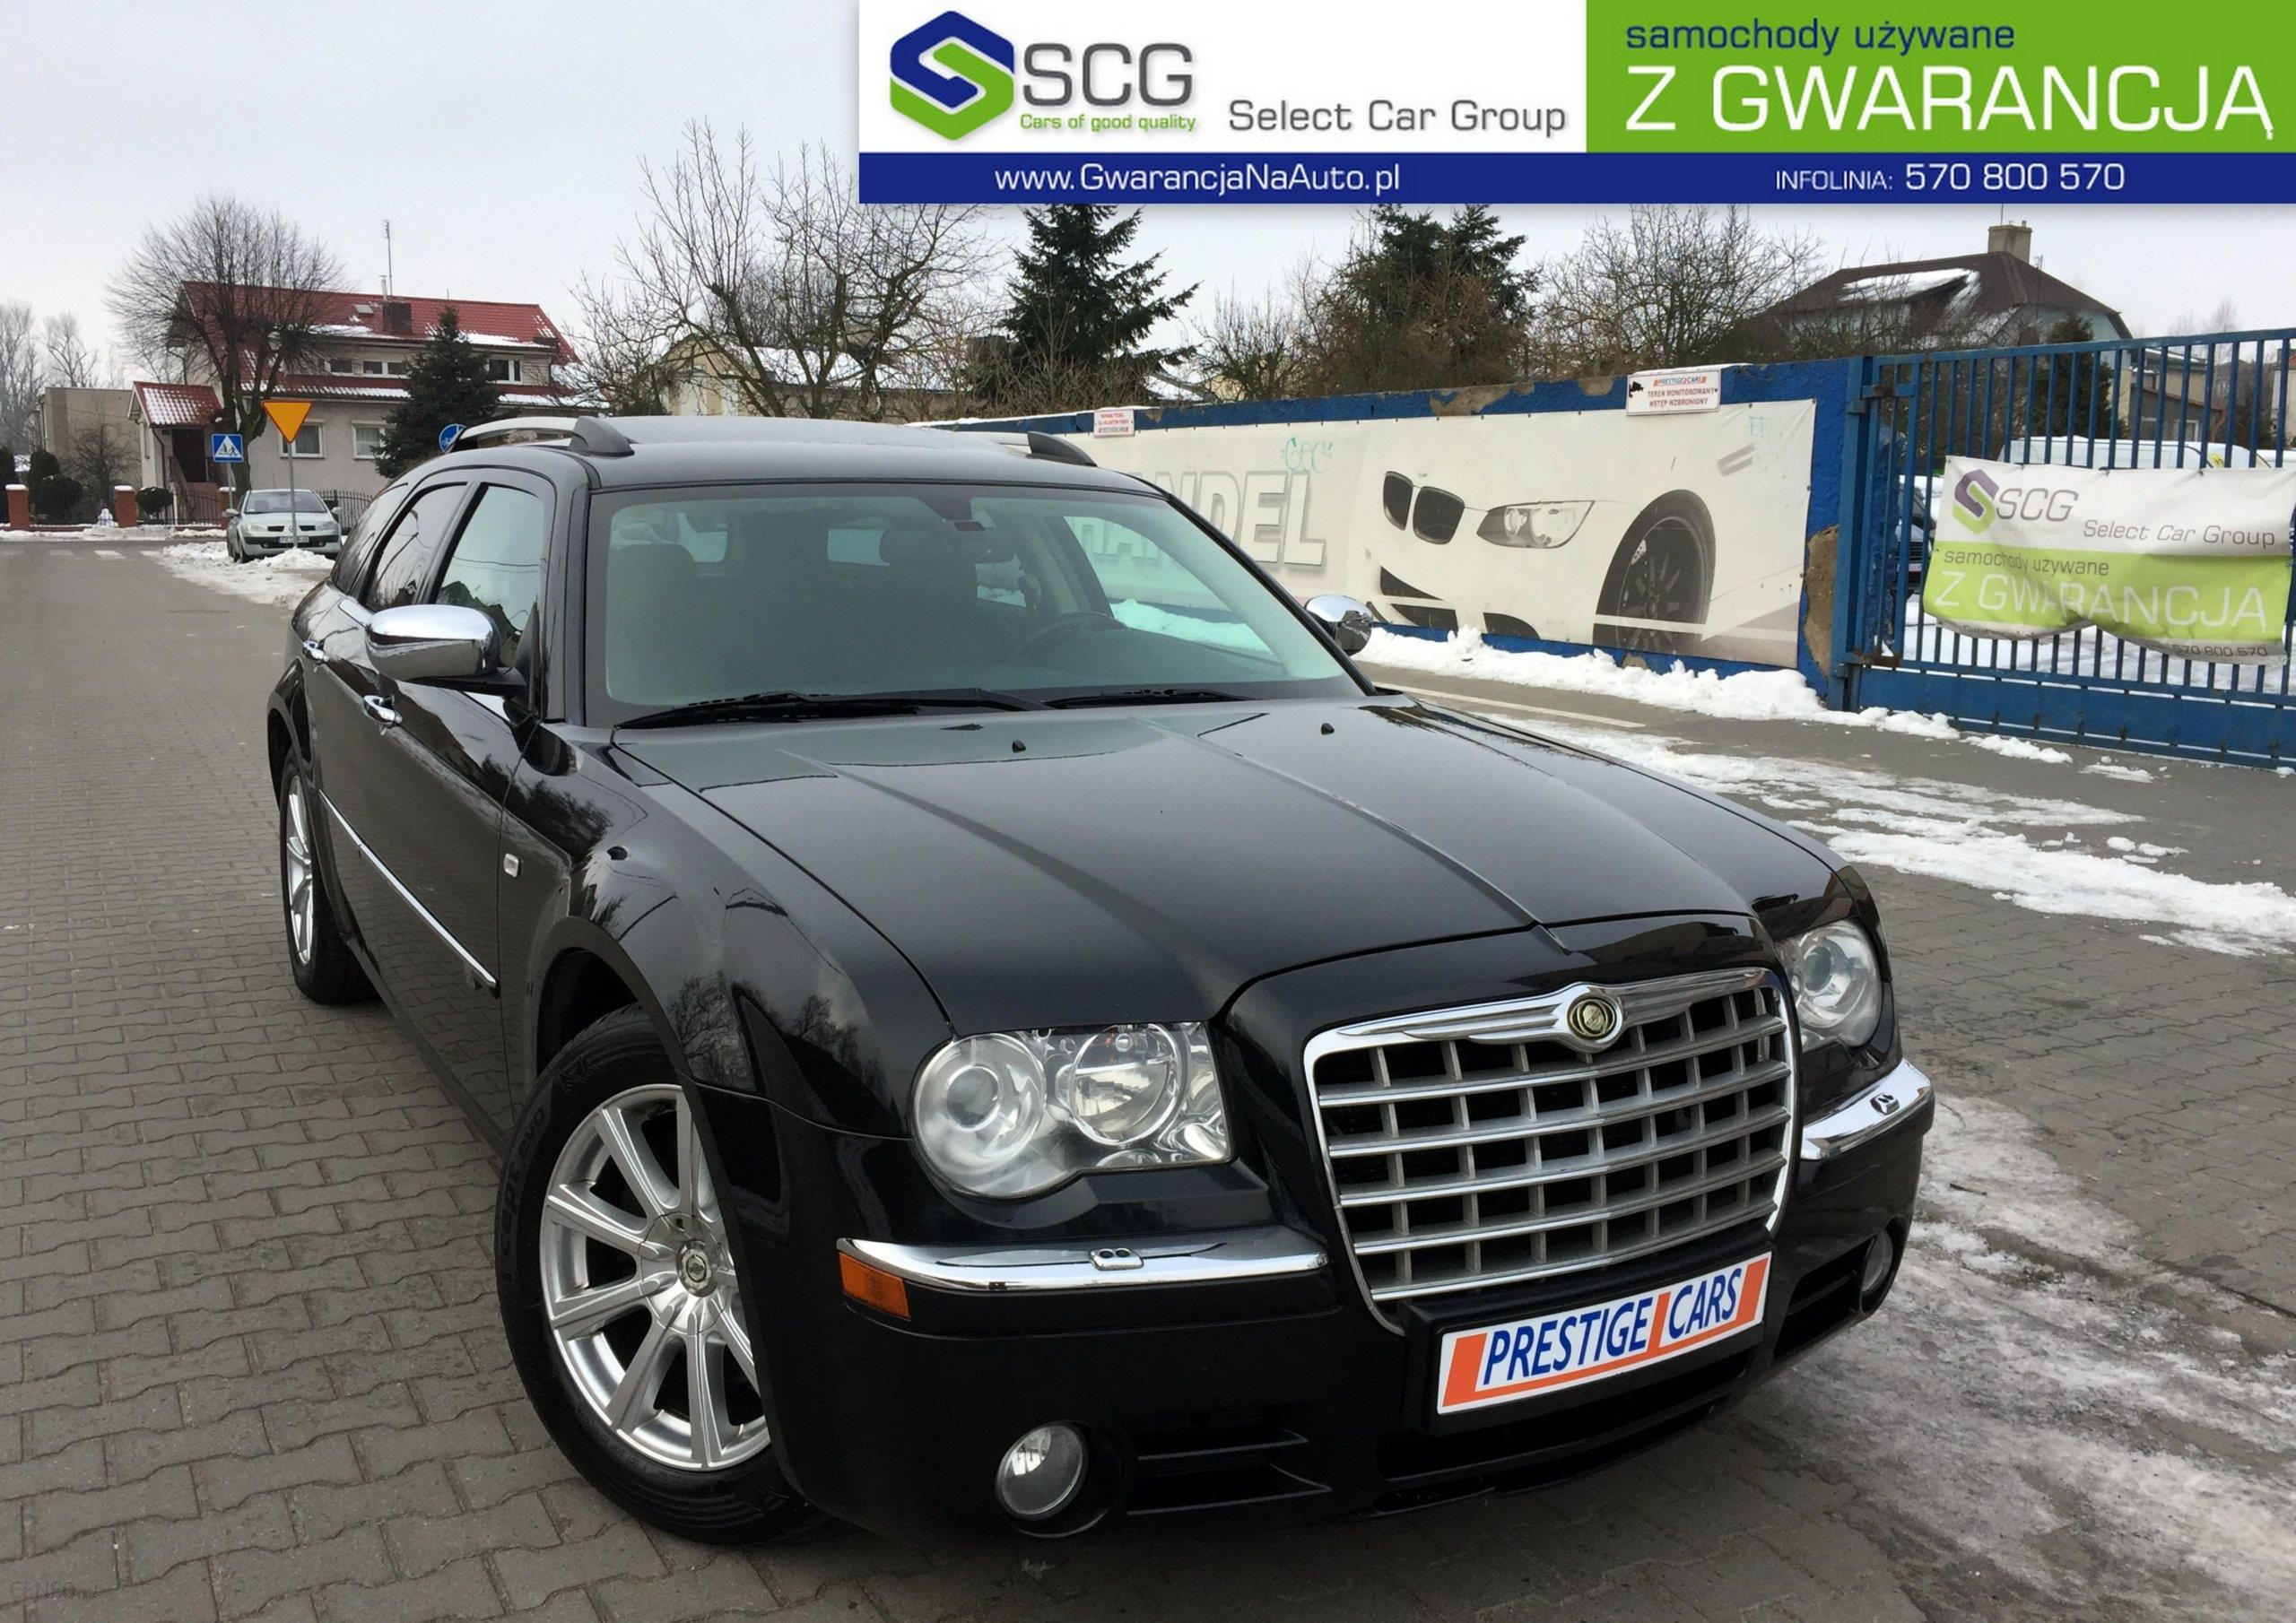 chrysler 300c 2009 diesel 218km kombi czarny opinie i. Black Bedroom Furniture Sets. Home Design Ideas